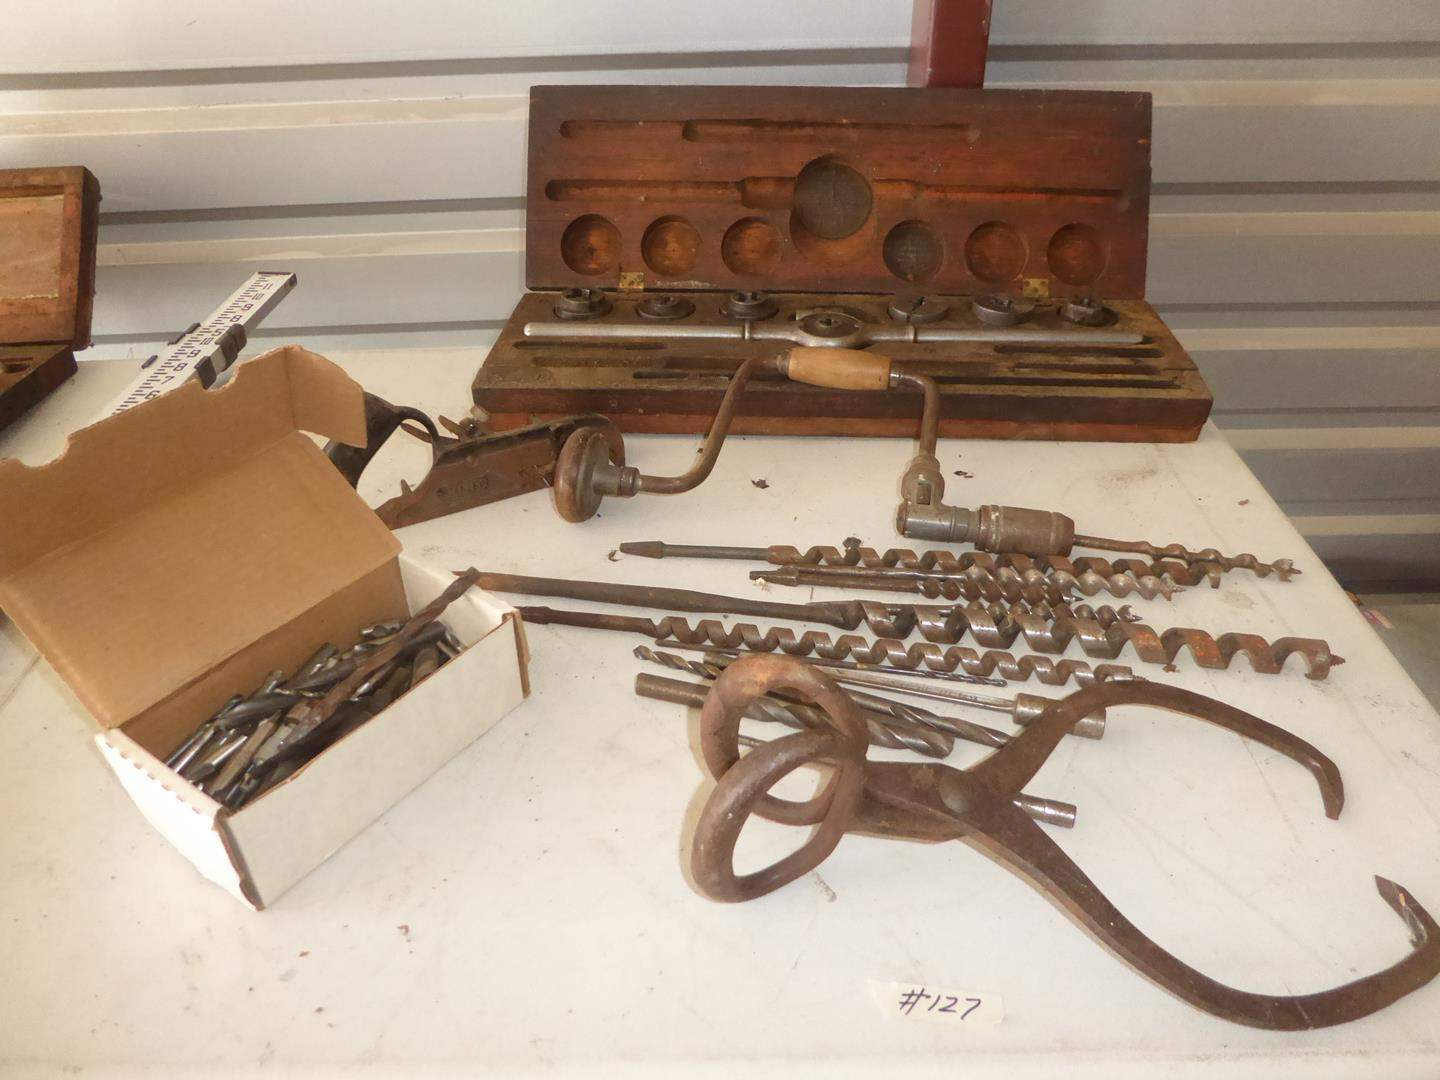 Lot # 127 - Vintage Drill Bits, Ice Tongs, Stanley Planer & Tap and Die Set (main image)